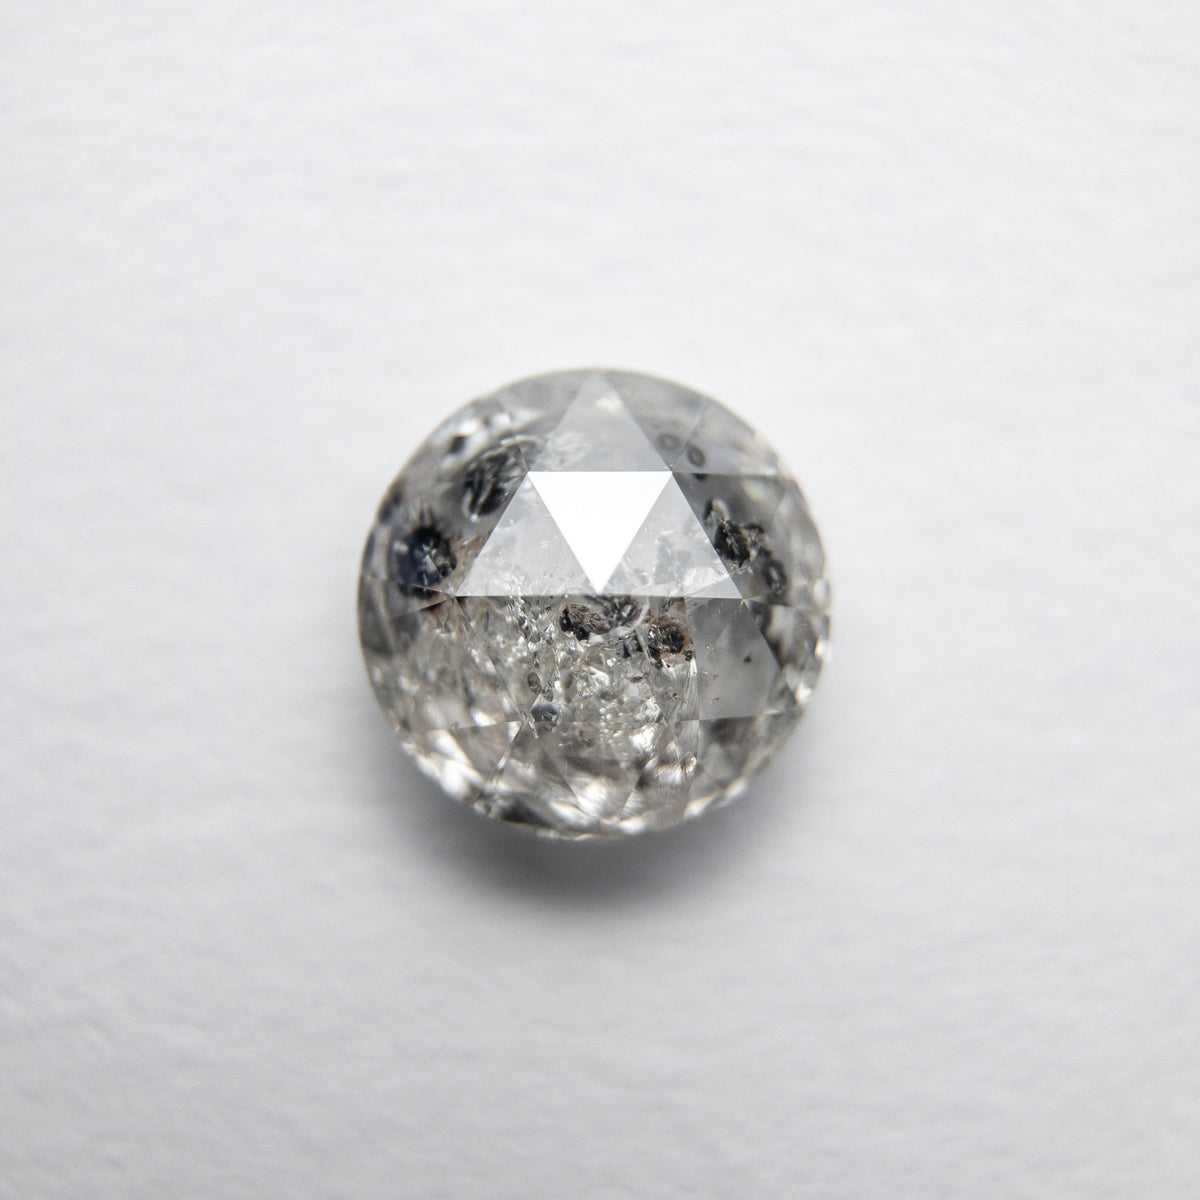 1.02ct 6.44x6.41x3.11mm Round Double Cut 18094-11